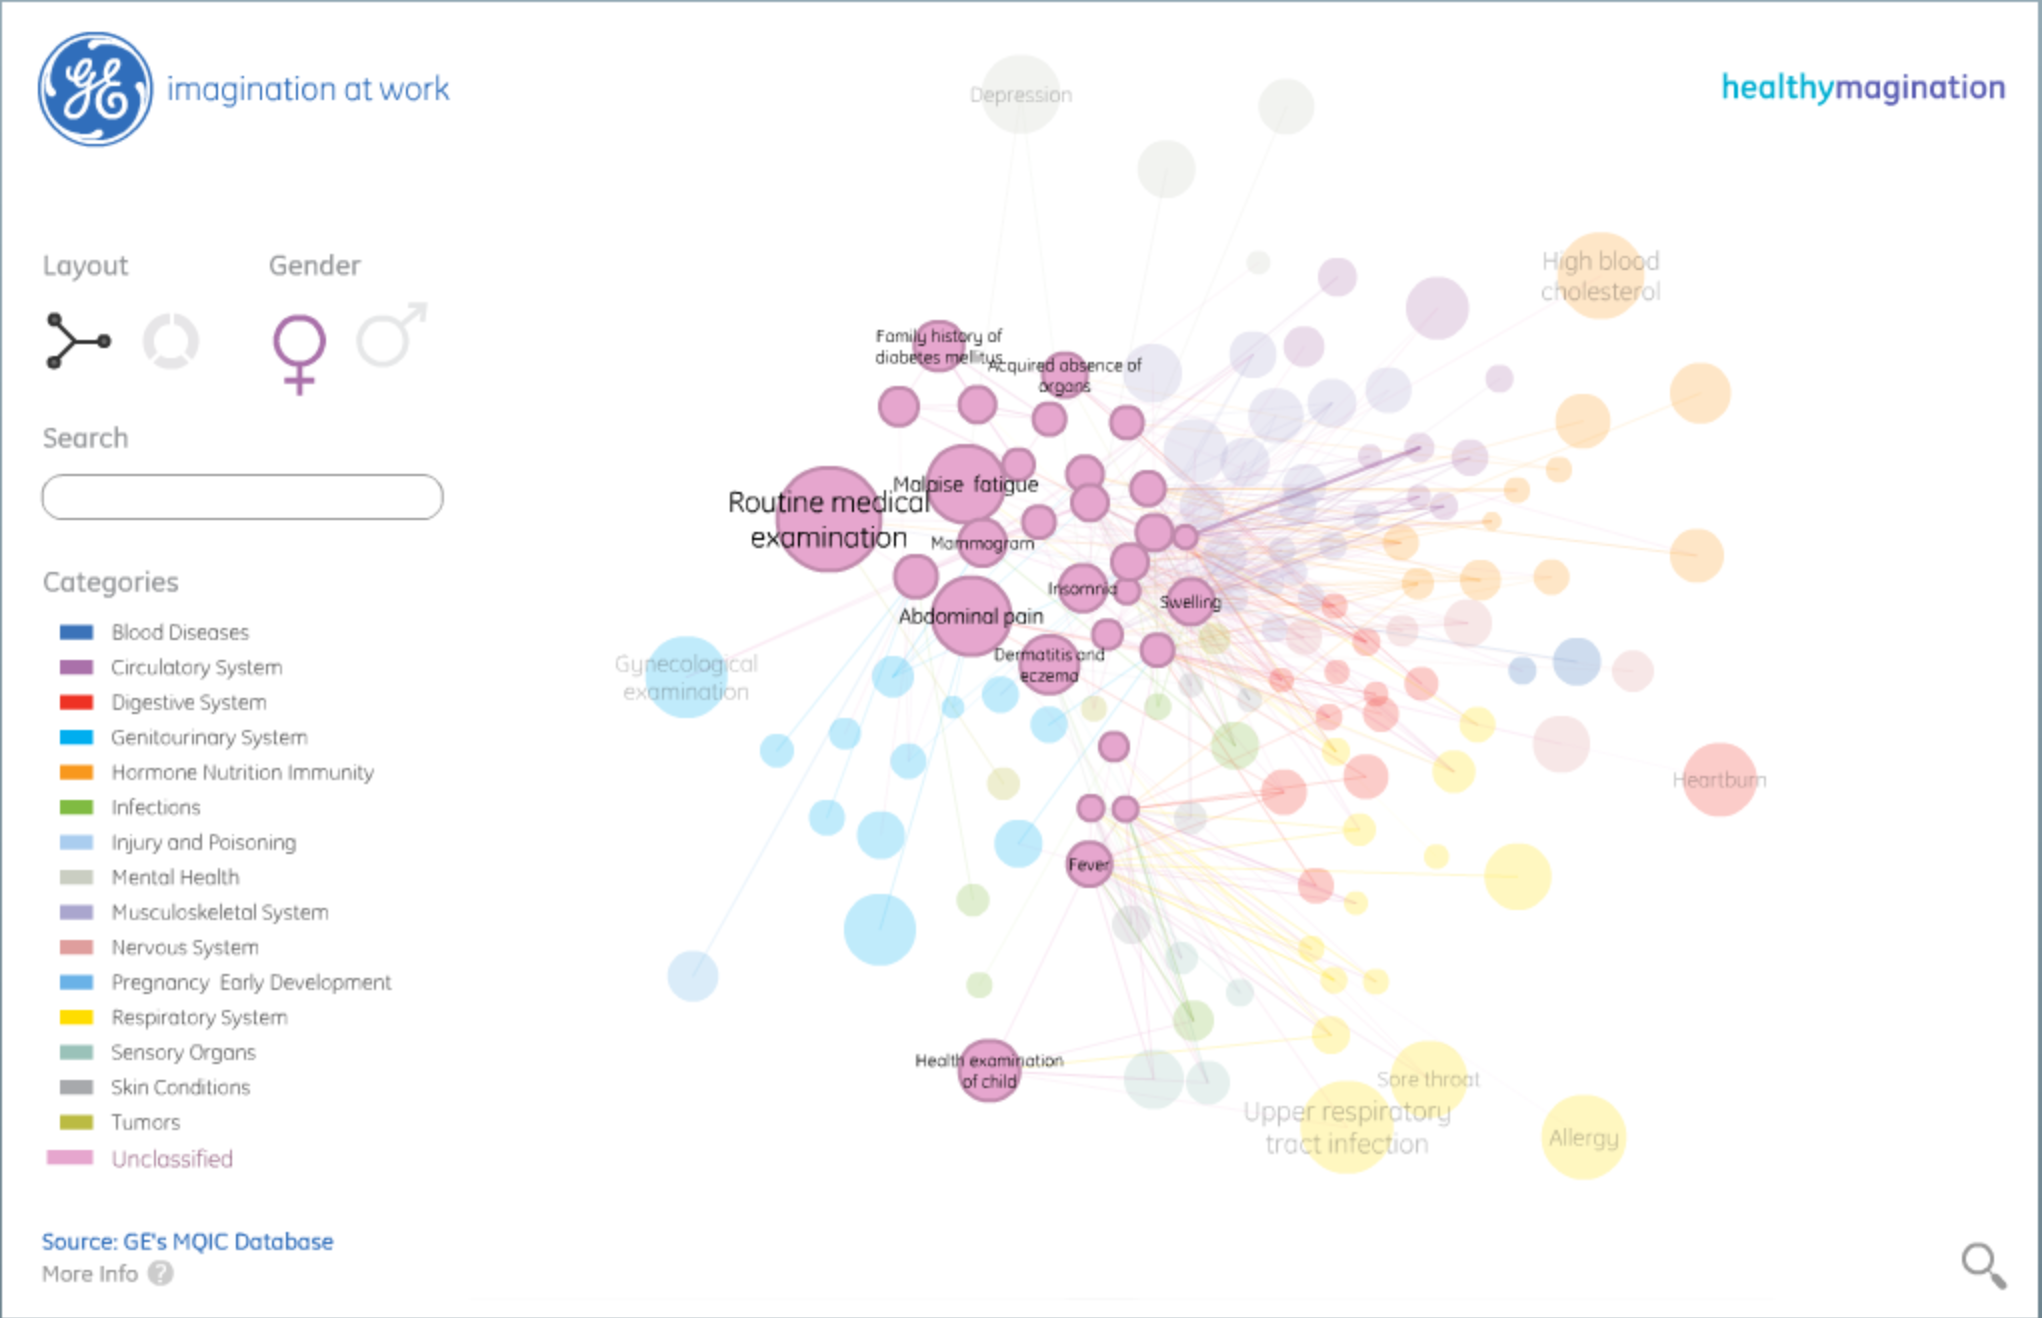 A view of the Health InfoScape website from MIT and GE [image courtesy GE Data Visualization].